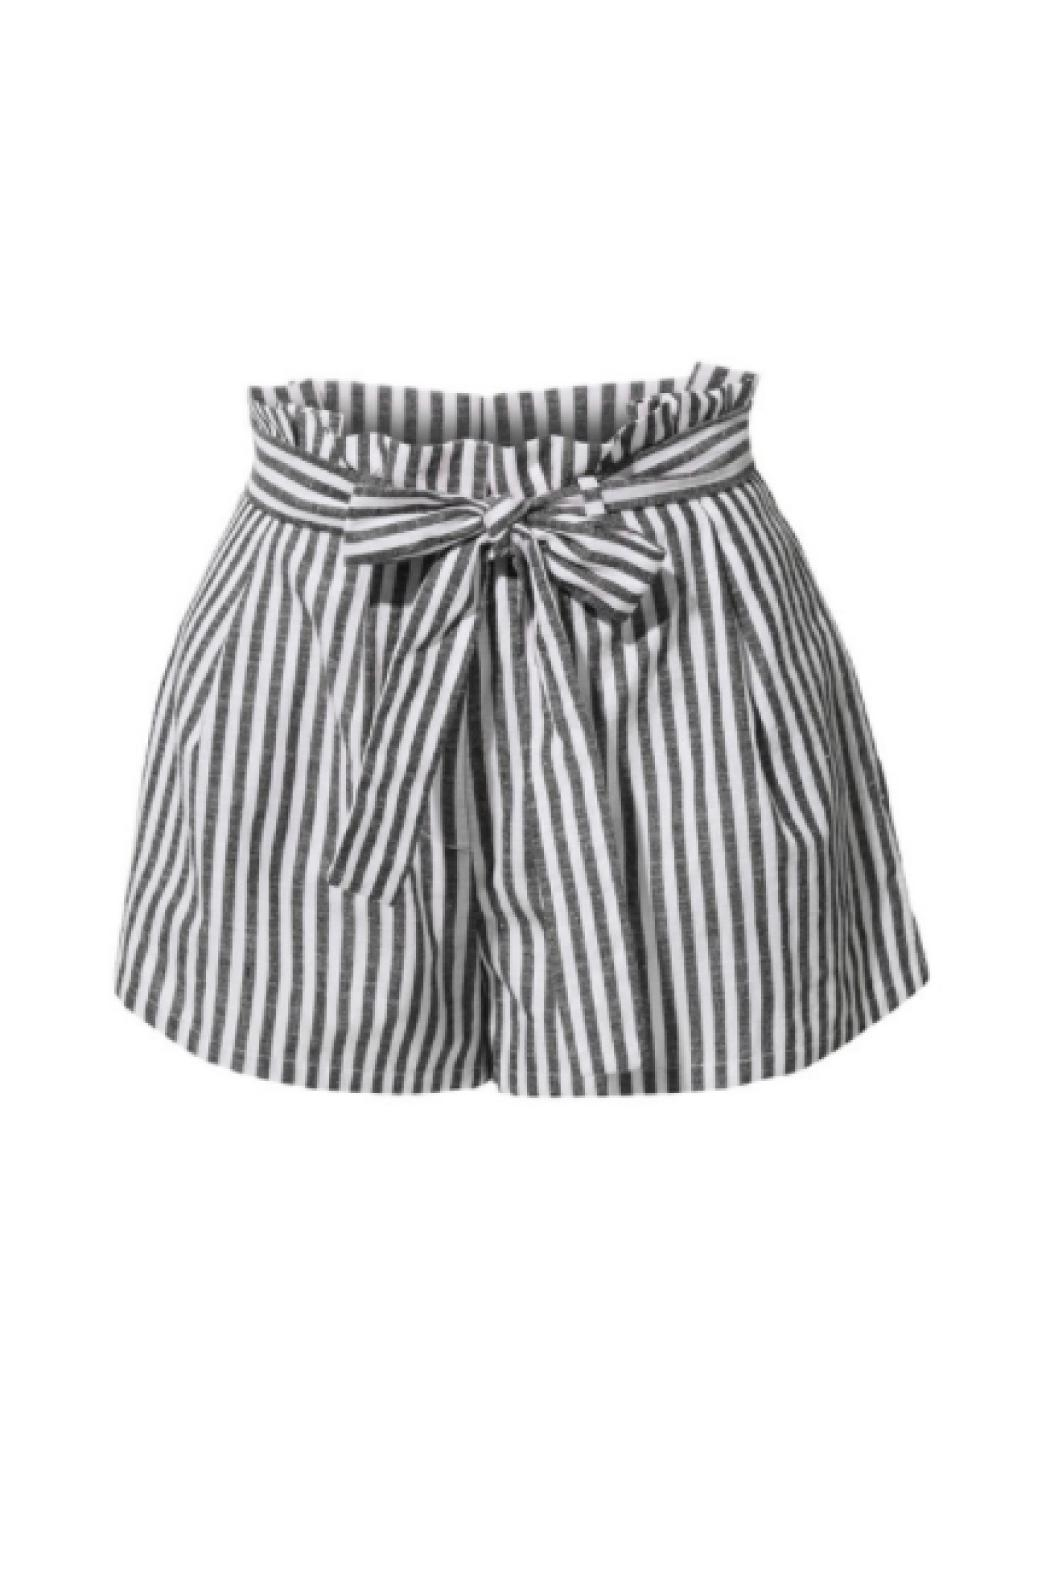 2Sable Striped Shorts - Front Cropped Image